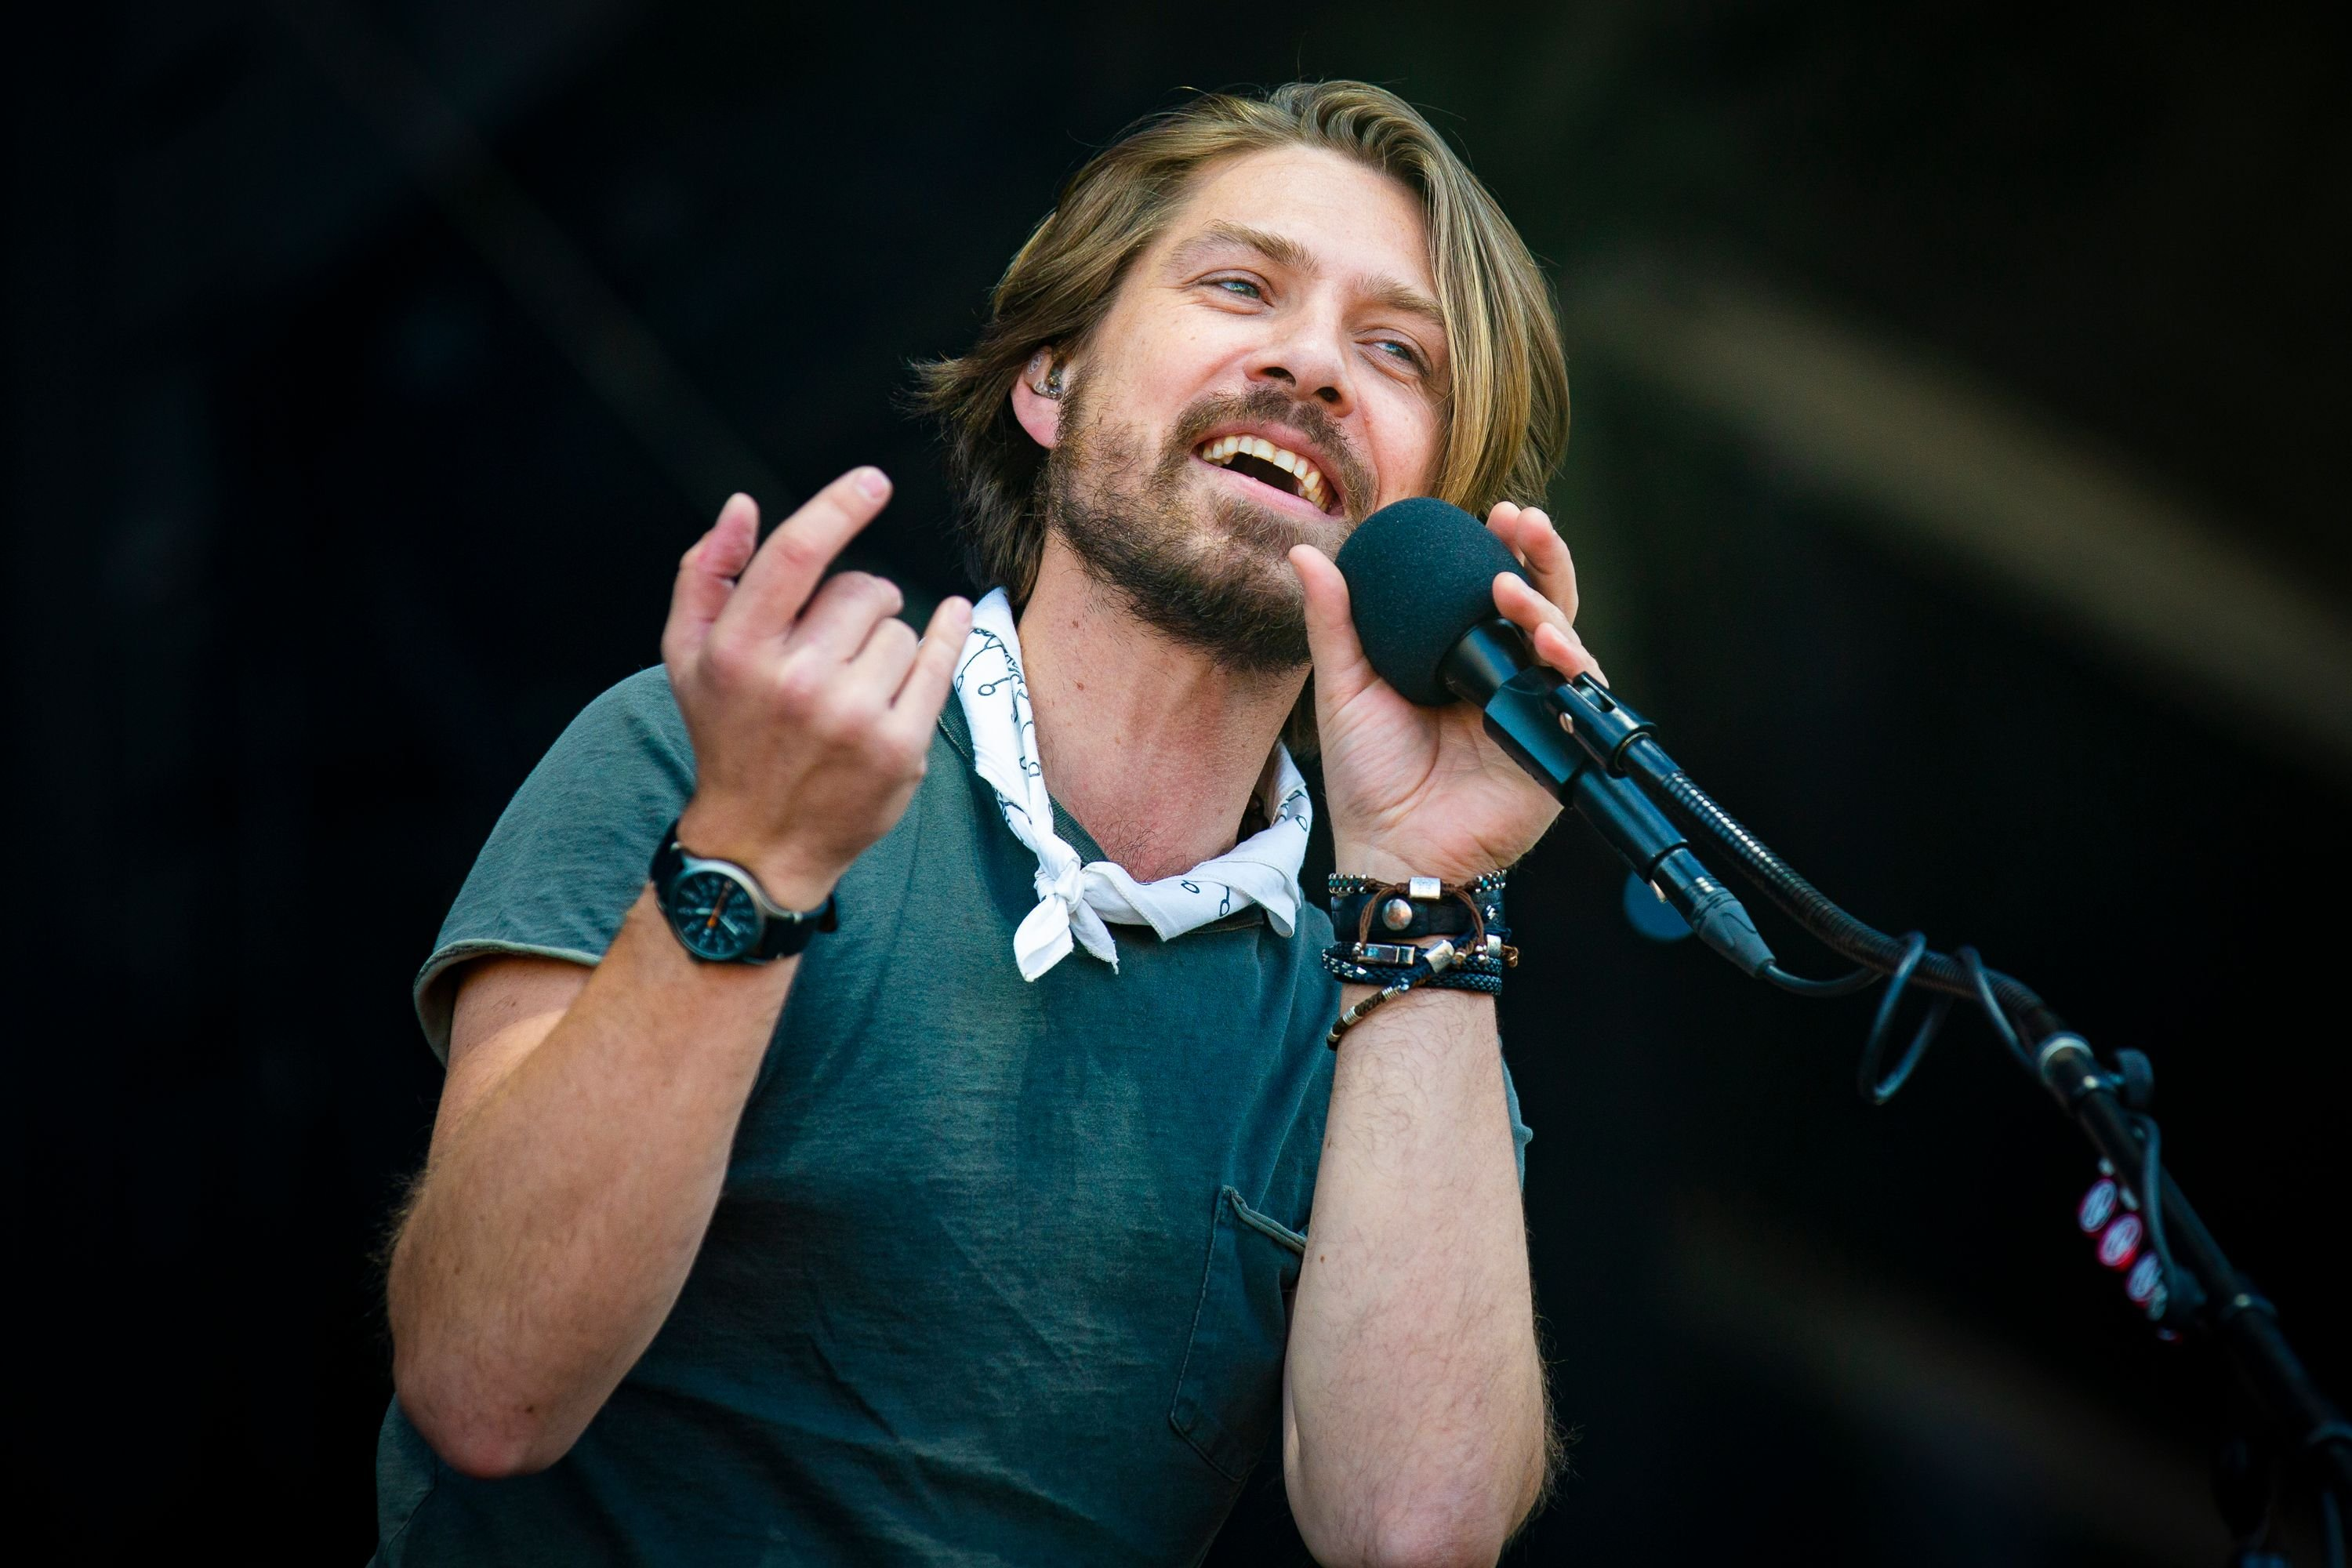 Taylor Hanson of Hanson performs at the RBC Bluesfest at LeBreton Flats on July 6, 2018 | Photo: Getty Images